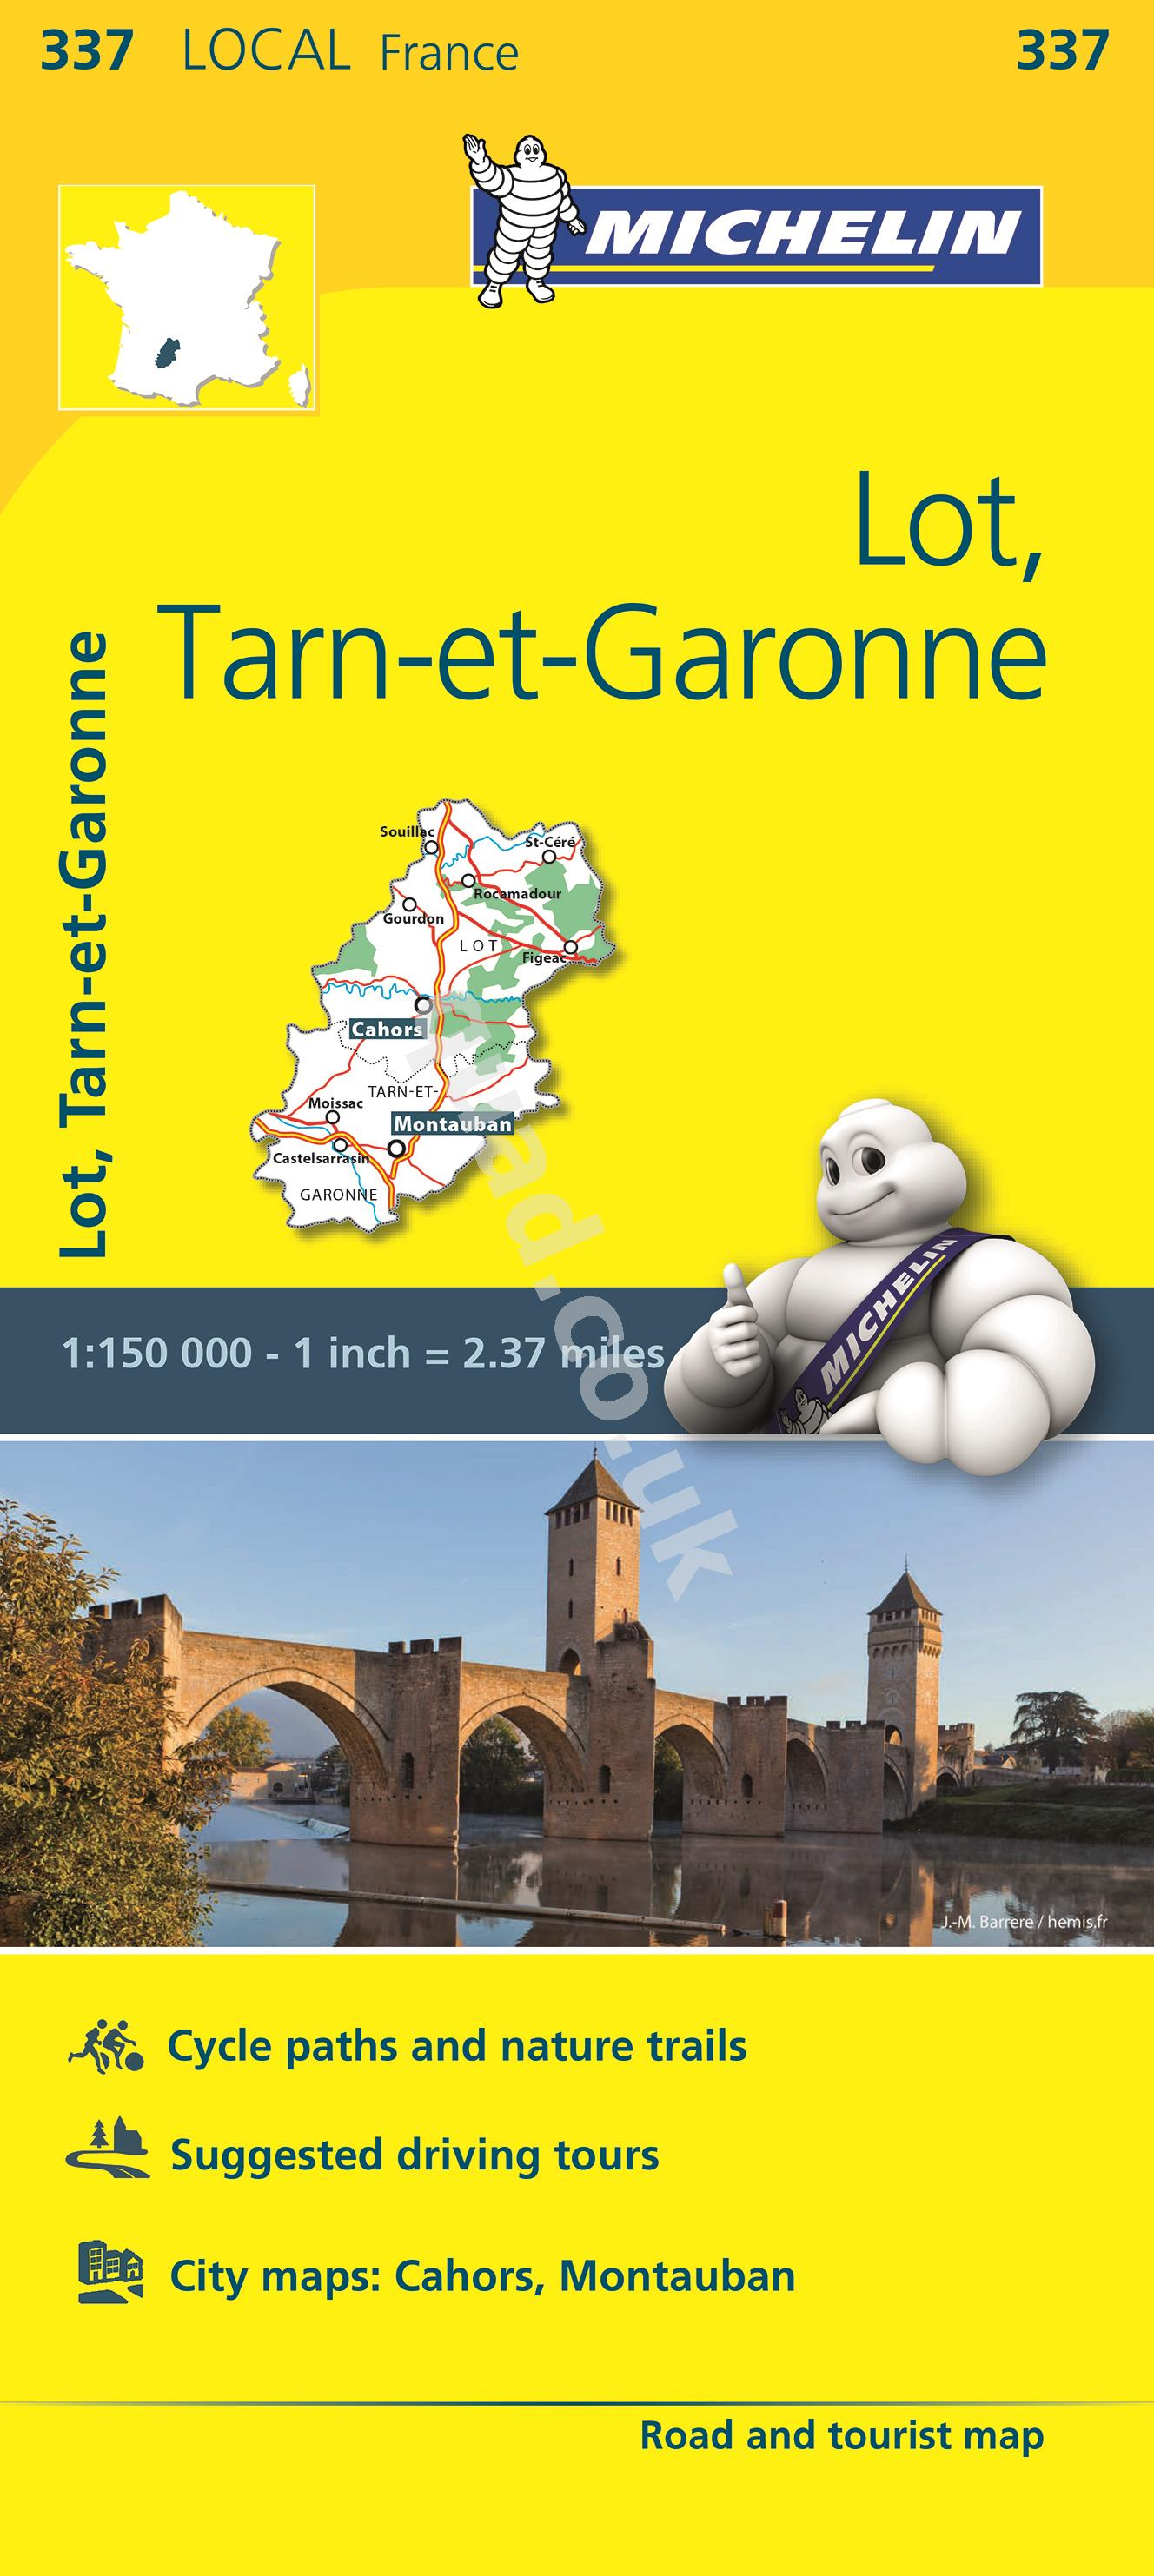 Michelin  Local Map - Lot, Tarn-et-Garonne (France)